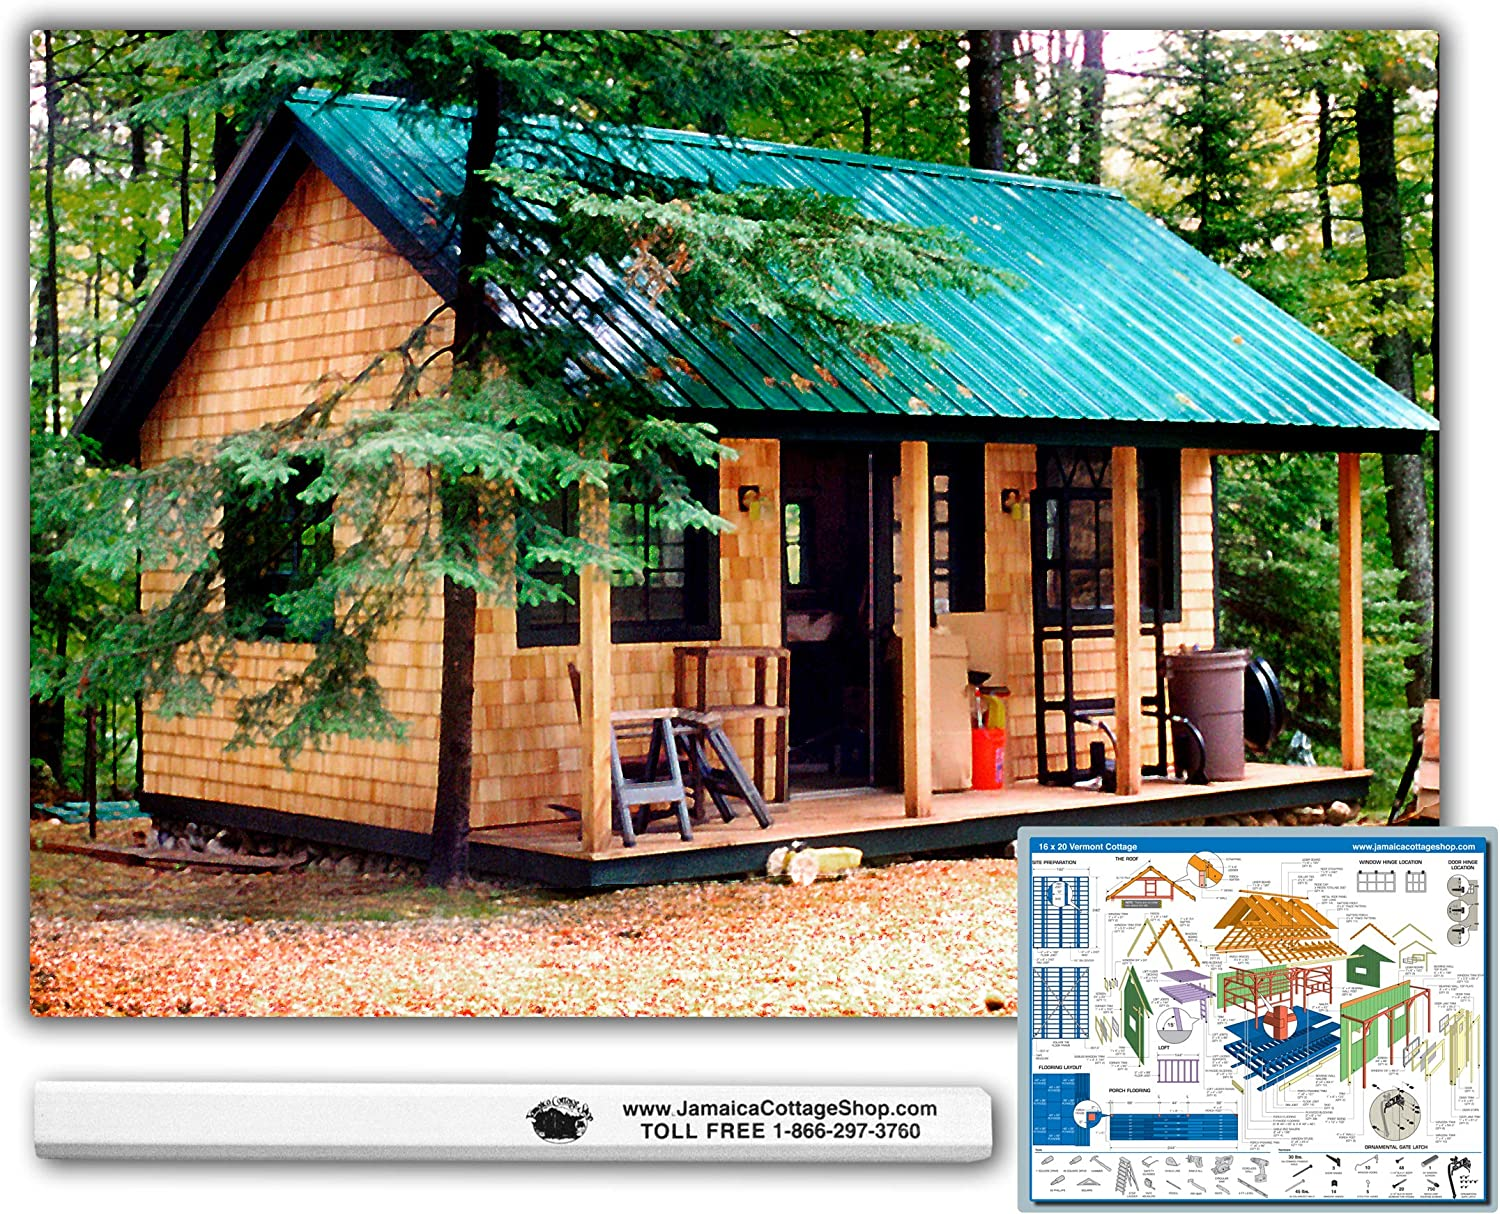 Step-By-Step DIY PLANS Omaha Mall - Timber Frame Plans and Post Beam Oklahoma City Mall Cabin